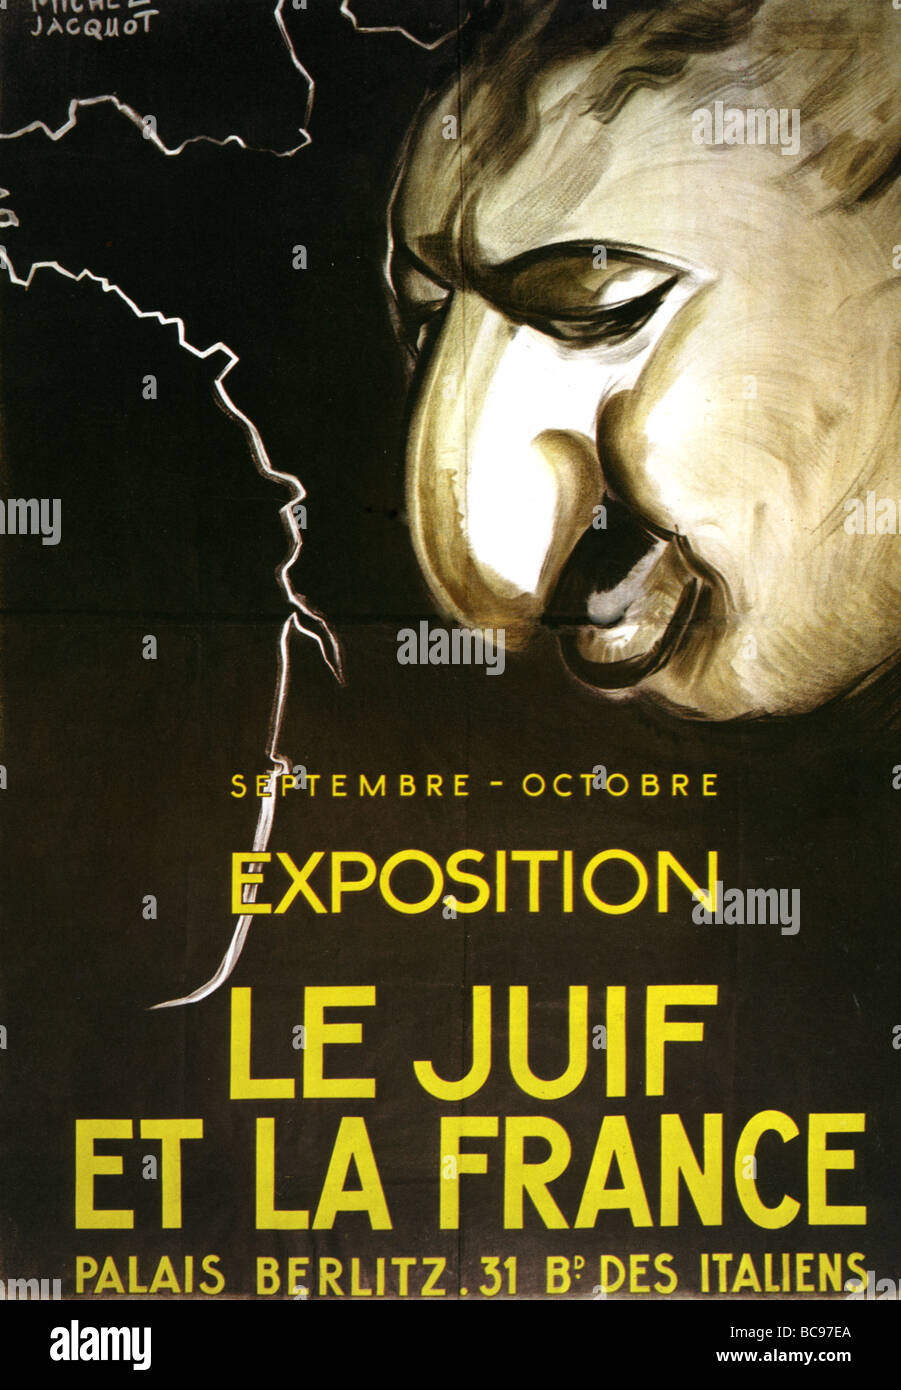 GERMAN poster advertising an anti Semitic exhibition in Paris in 1943 - Stock Image